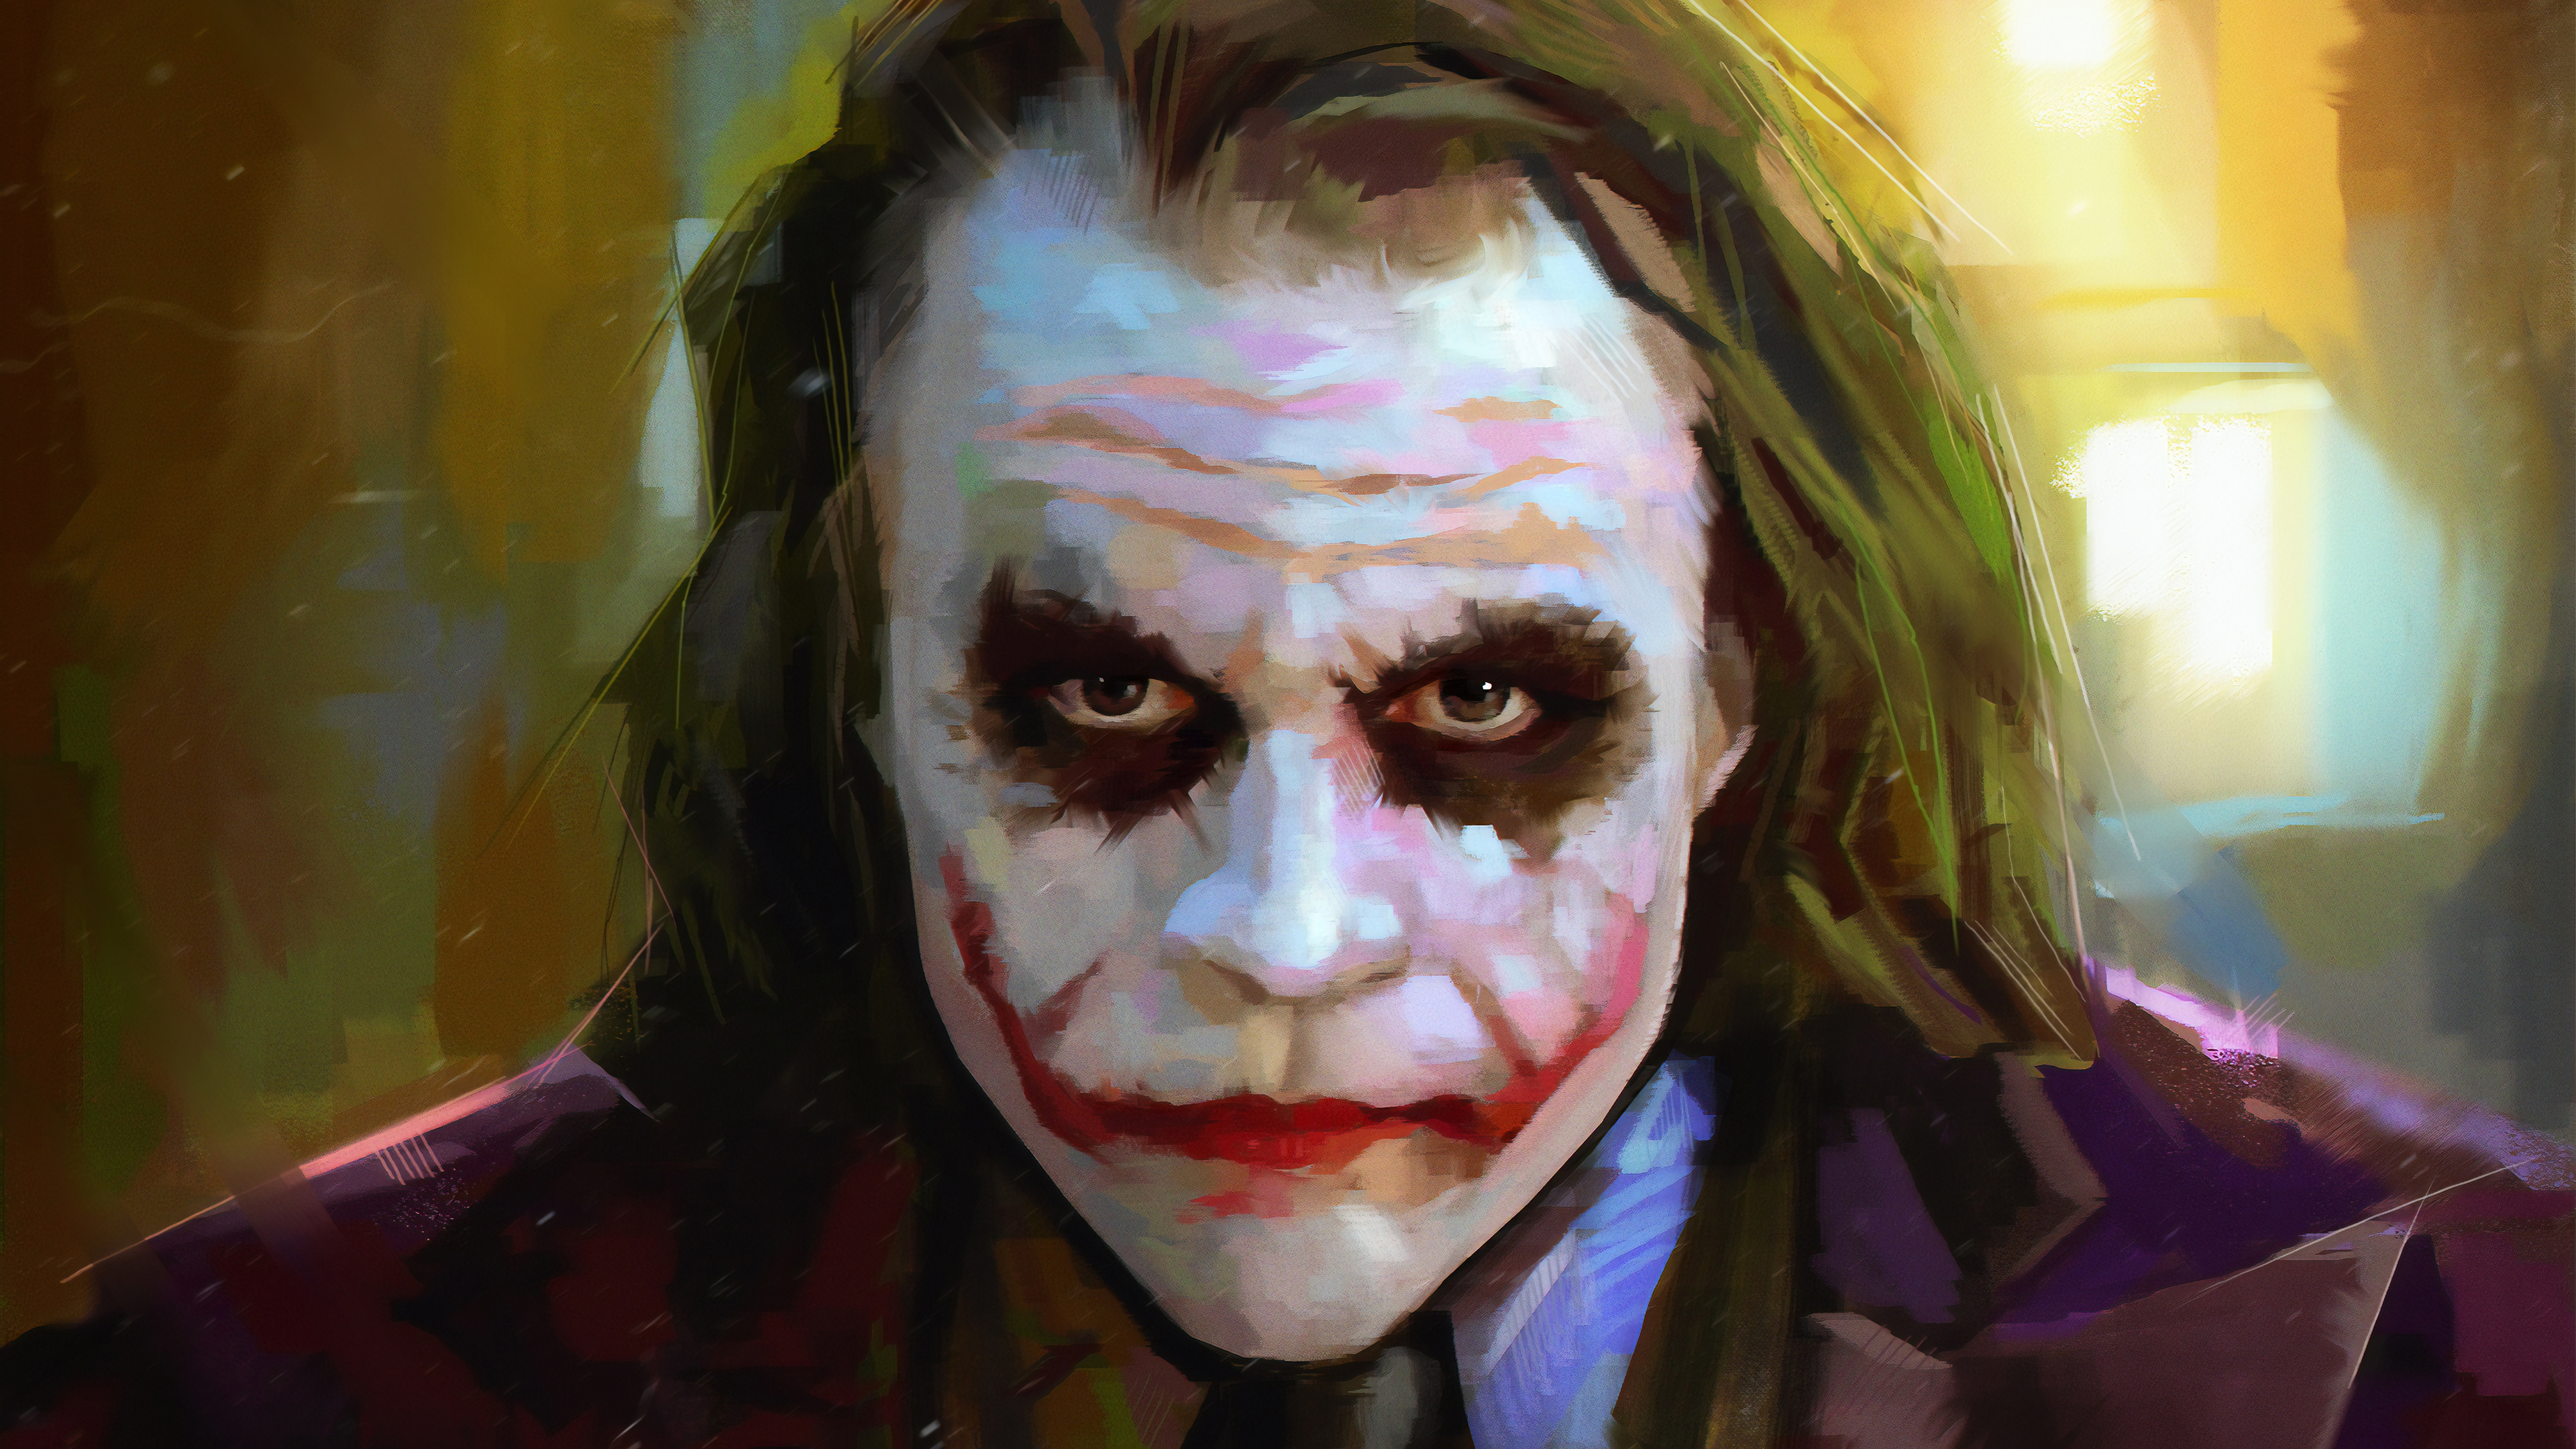 Heath Ledger As Joker 4k Hd Superheroes 4k Wallpapers Images Backgrounds Photos And Pictures